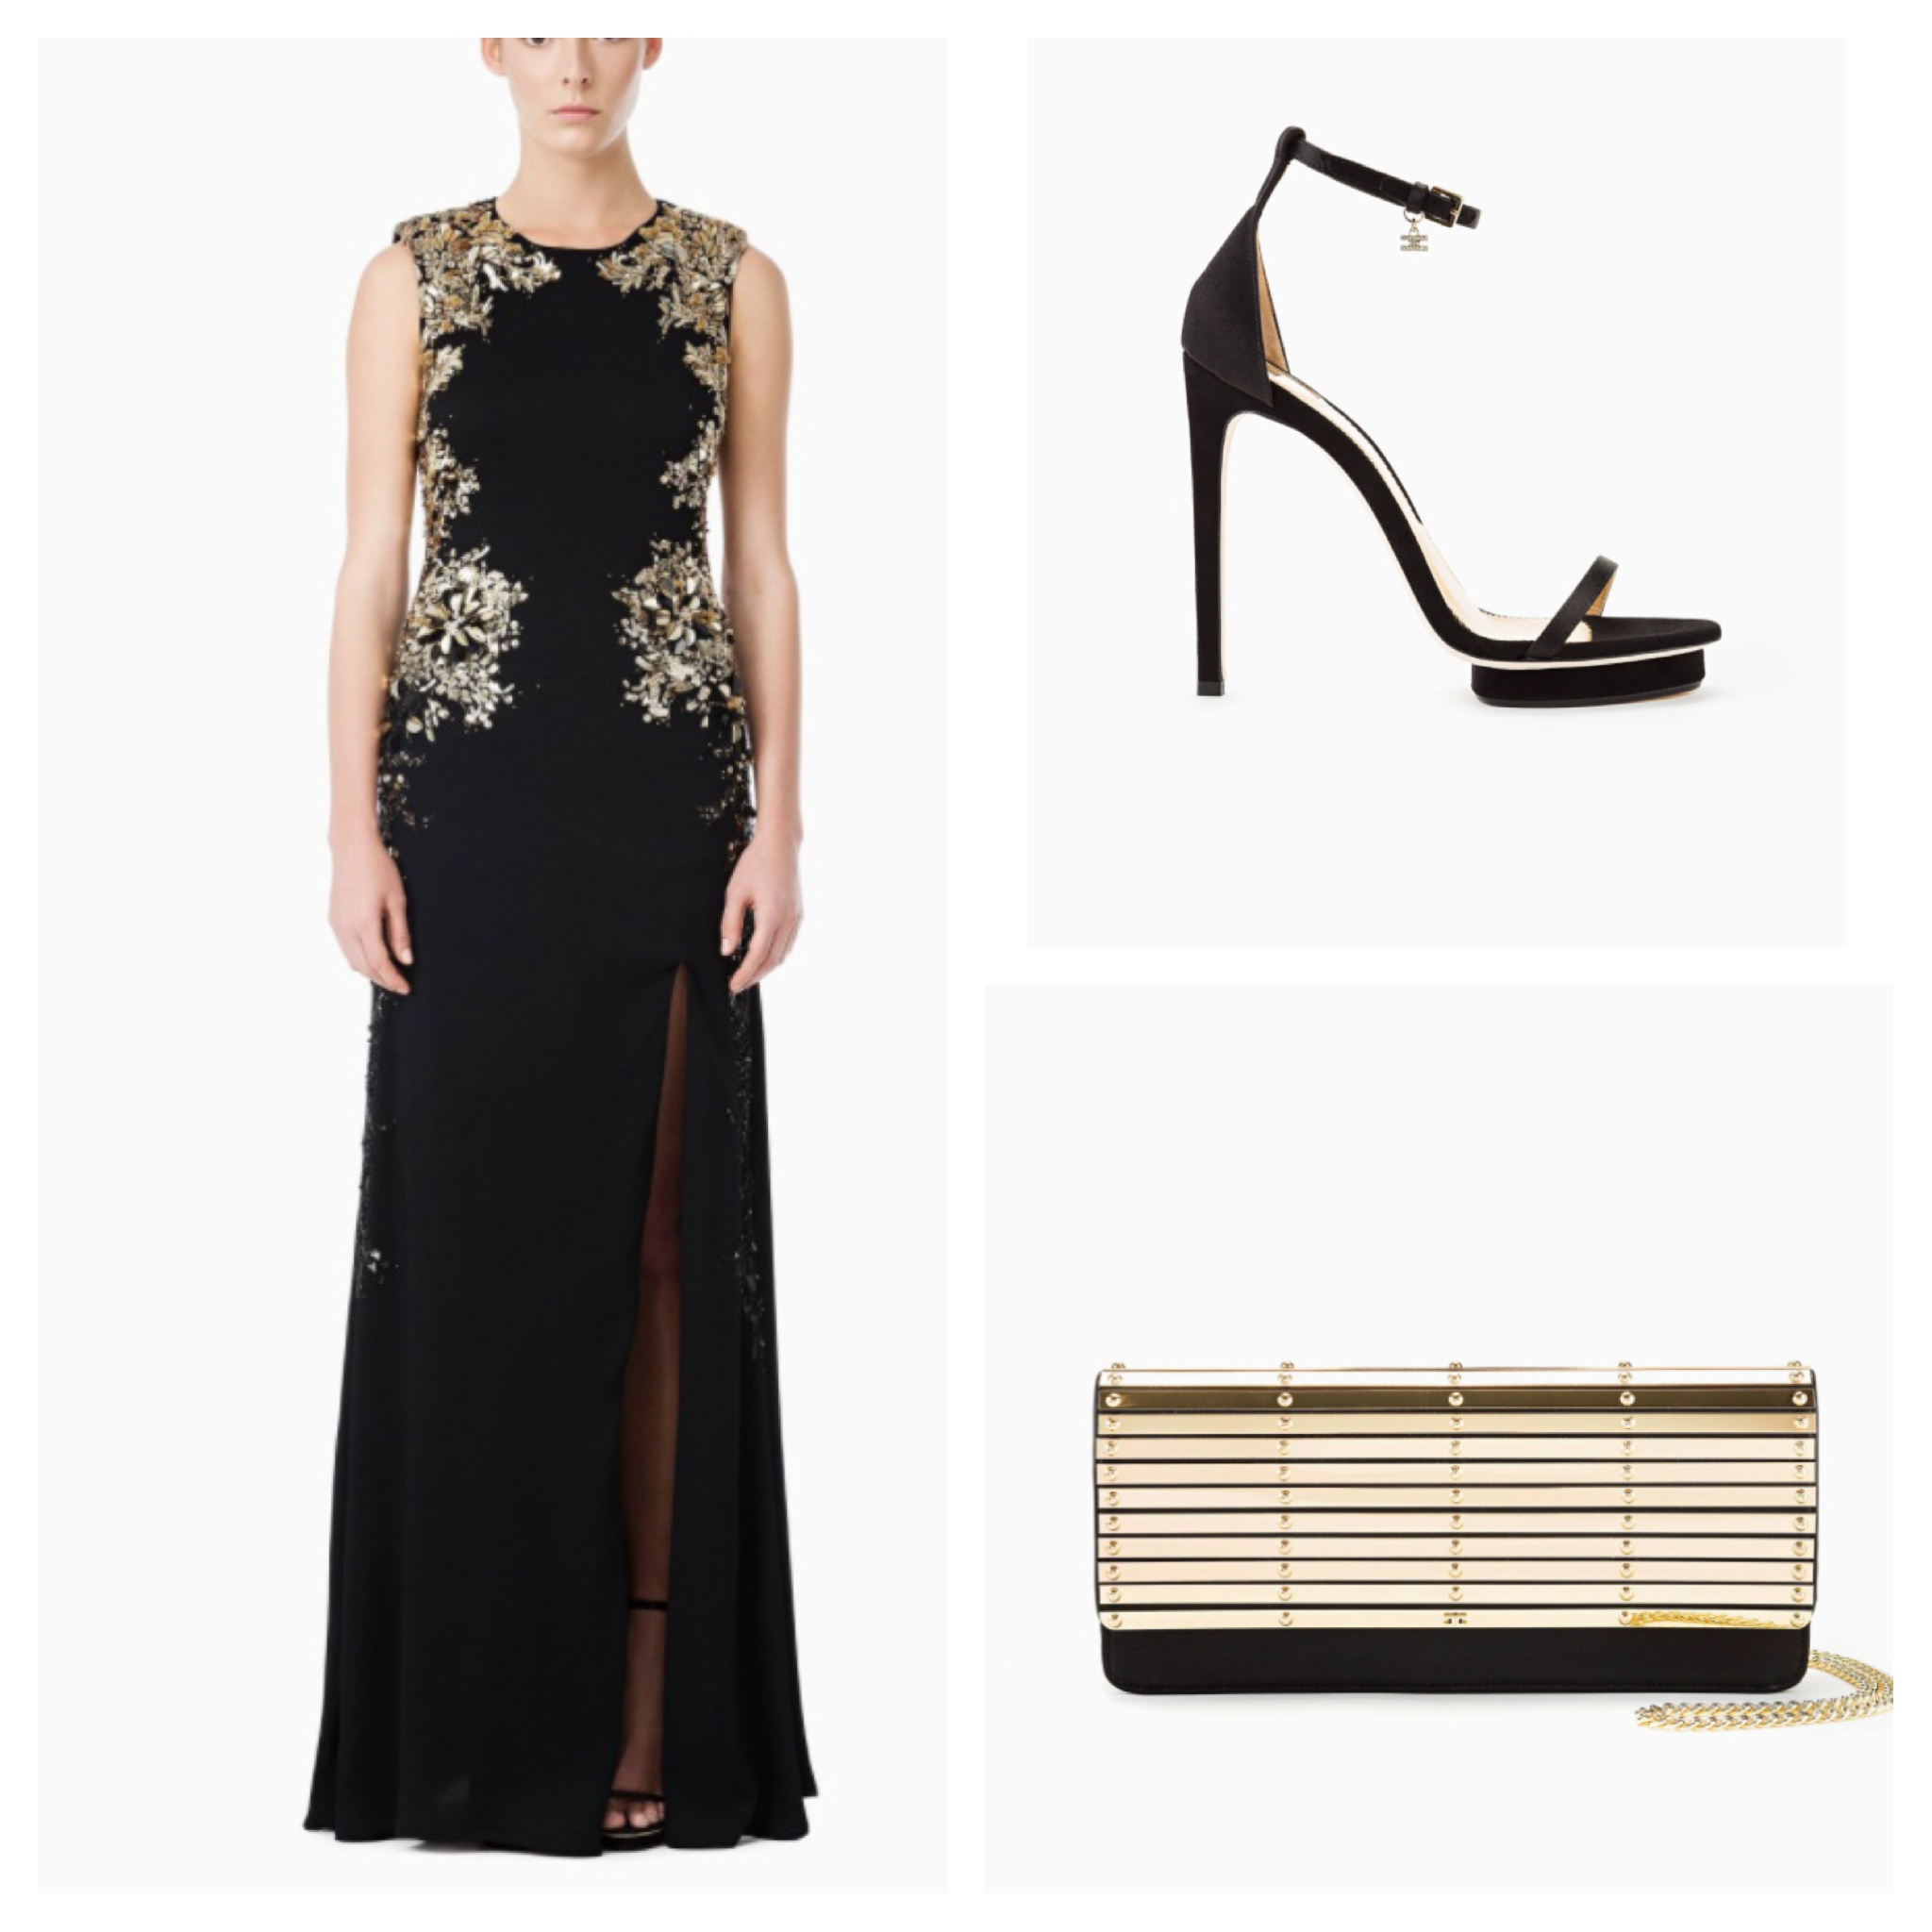 A total black long dress that brings out grace and beauty, where gold details are the main features.